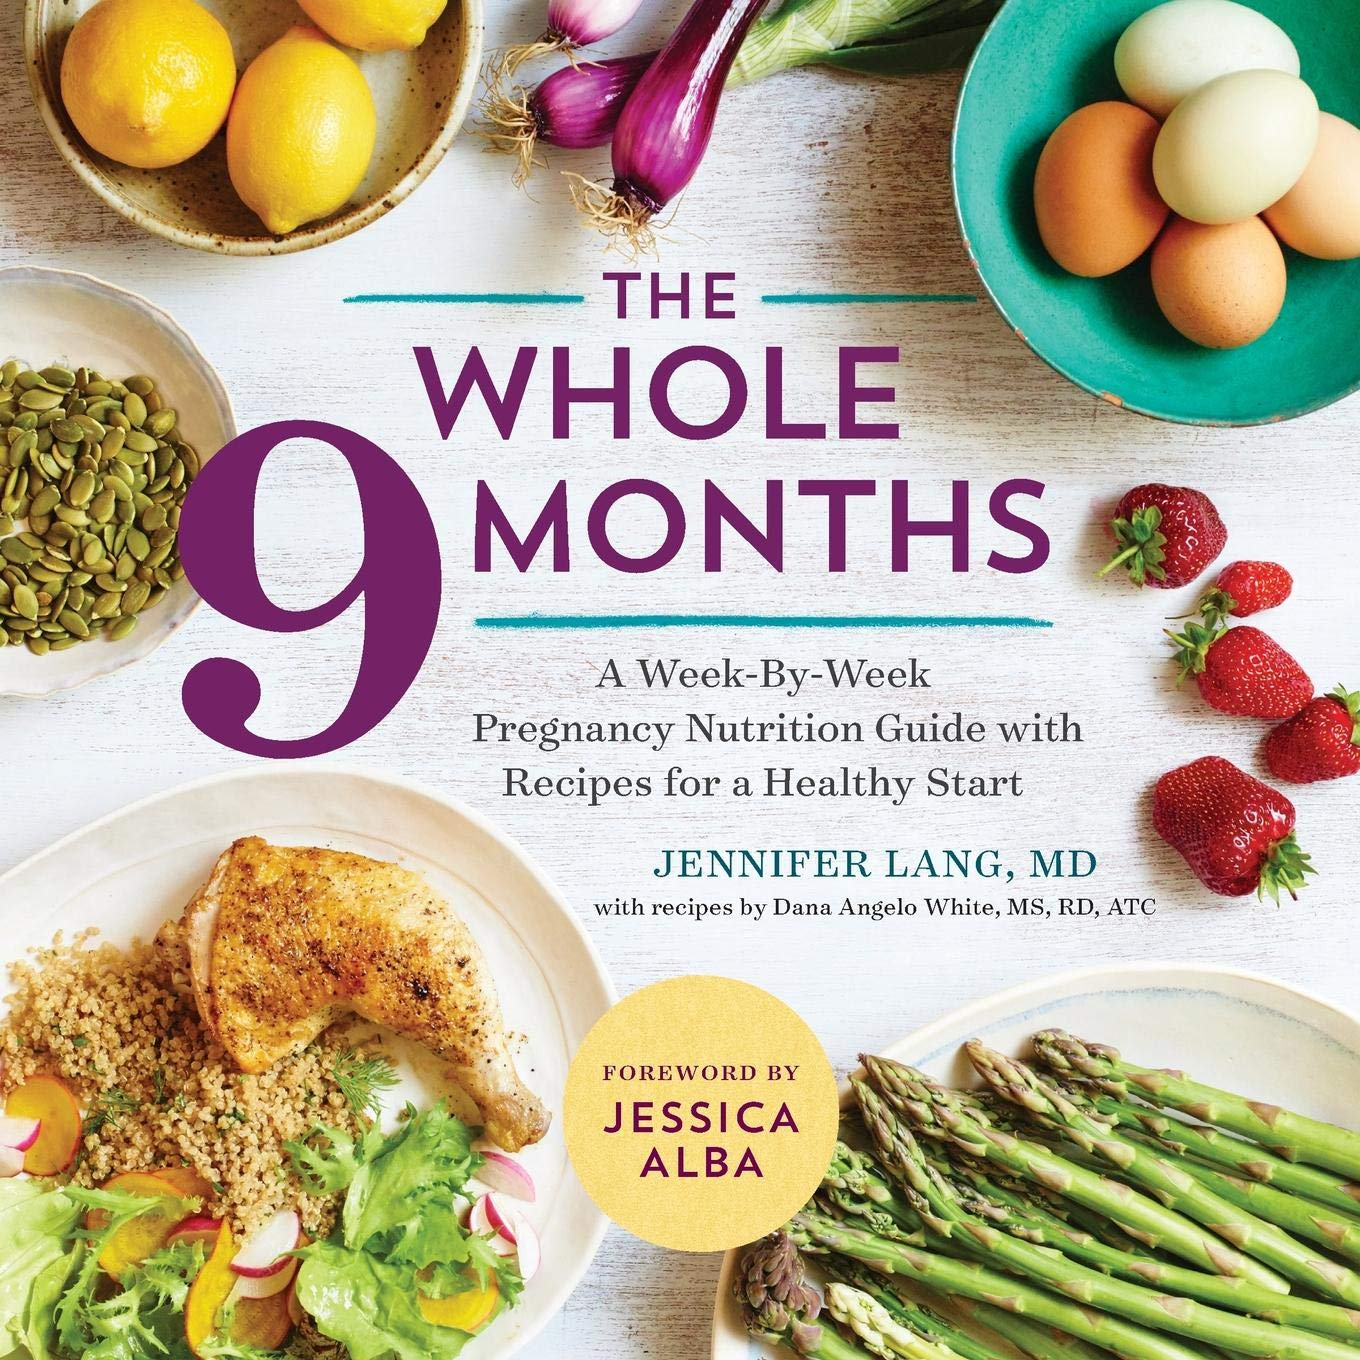 The Whole 9 Months: A Week-By-Week Pregnancy Nutrition Guide with